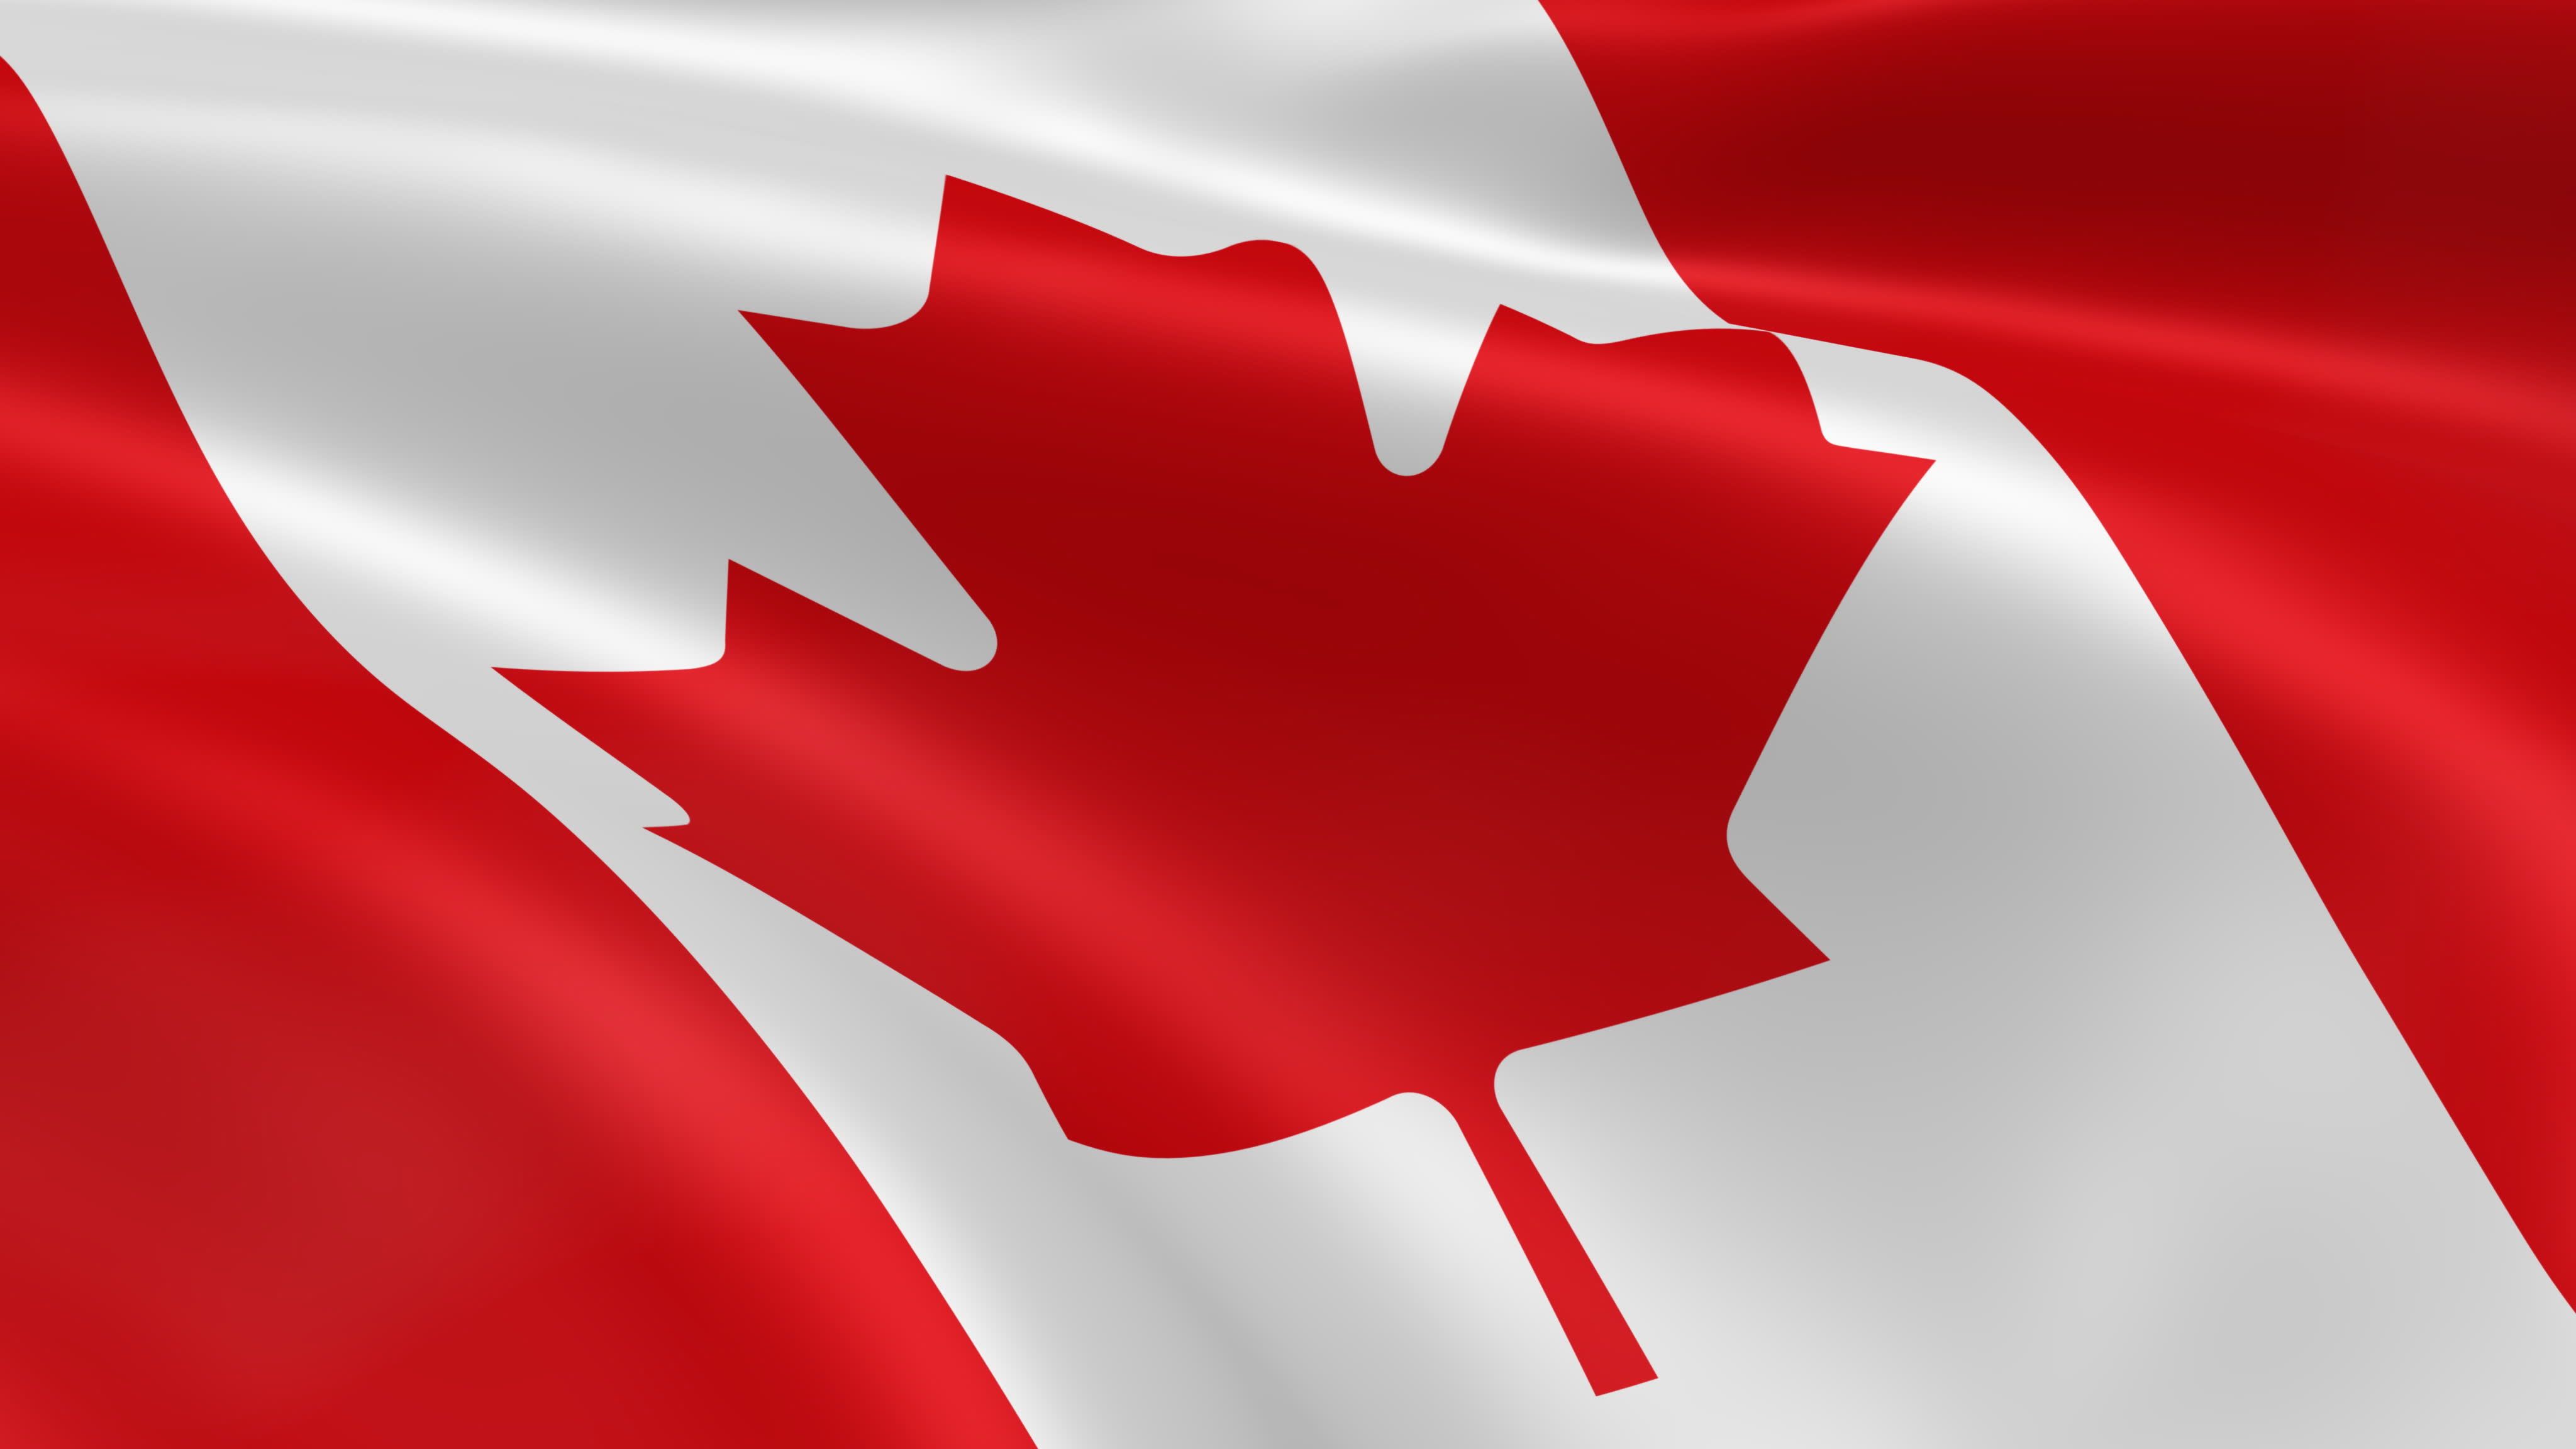 http://fullhdpictures.com/wp-content/uploads/2016/01/Canadian-Flag-Pictures.jpg